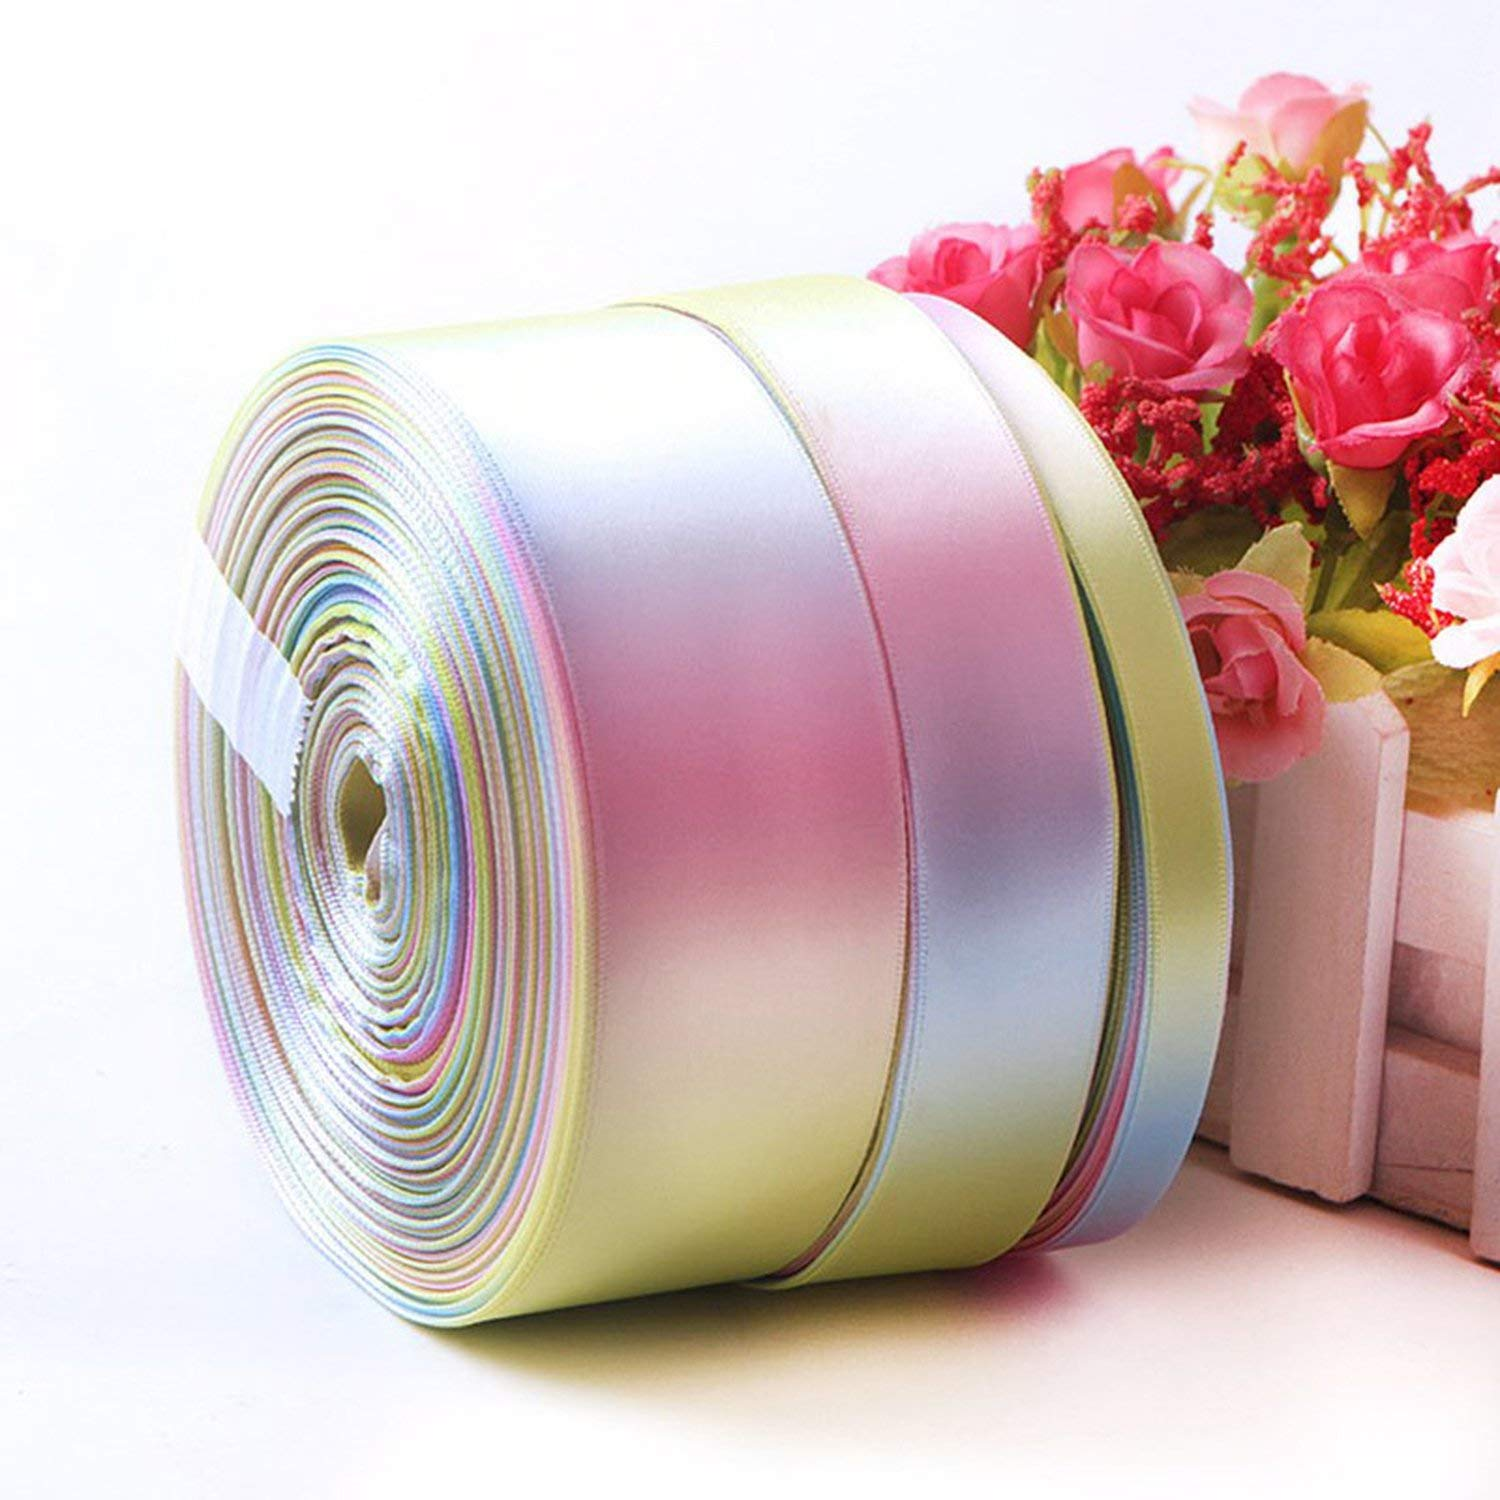 Party Streamers Rainbow Ribbon Printed Polyester Satin Ribbons Handmade Materials,50mm by AYO-LE streamers (Image #6)